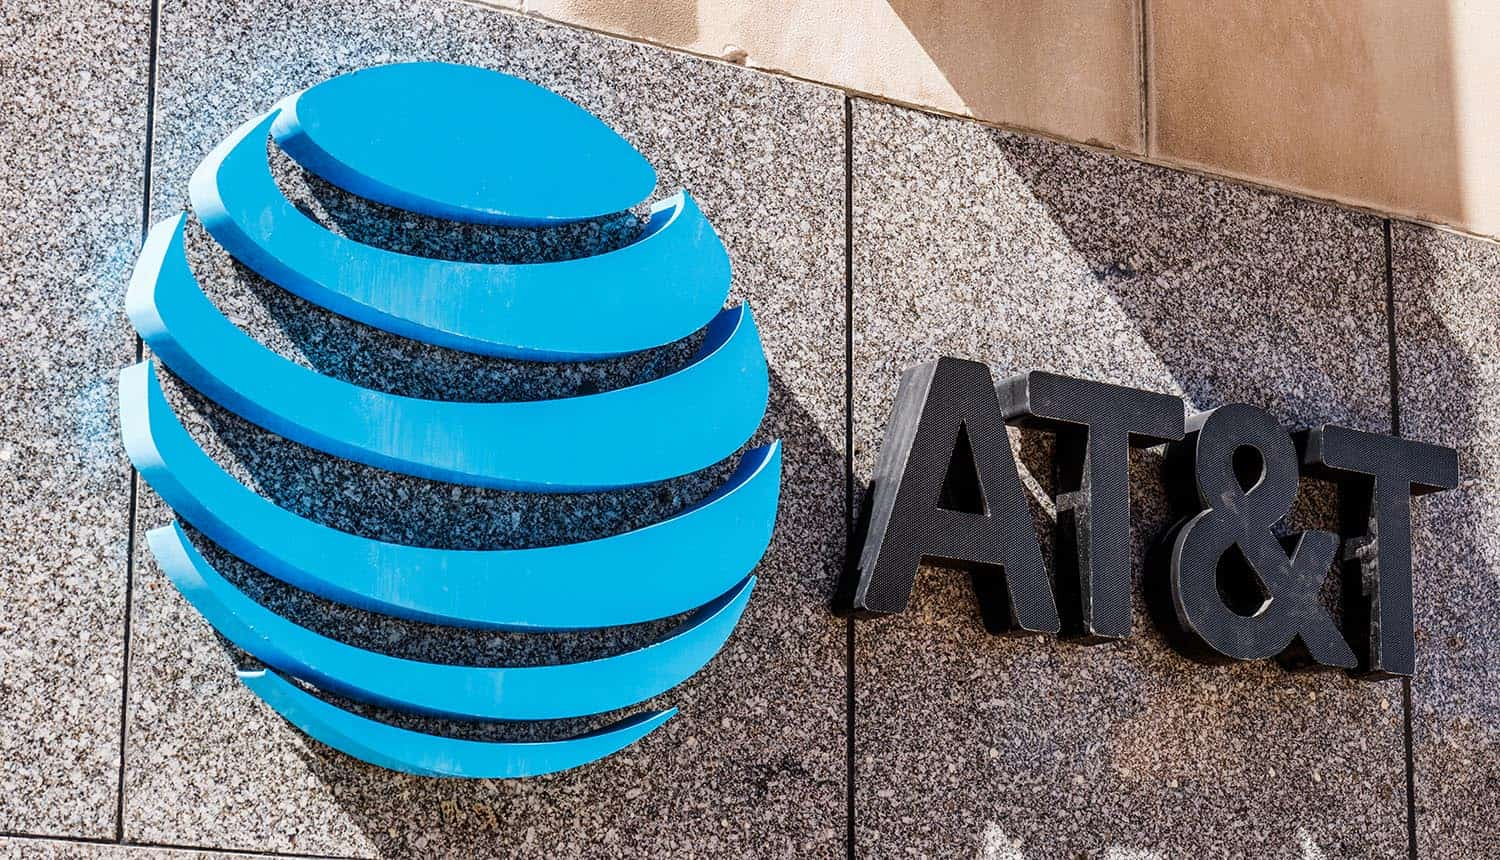 Downtown AT&T office showing cheap phone plans with targeted ads